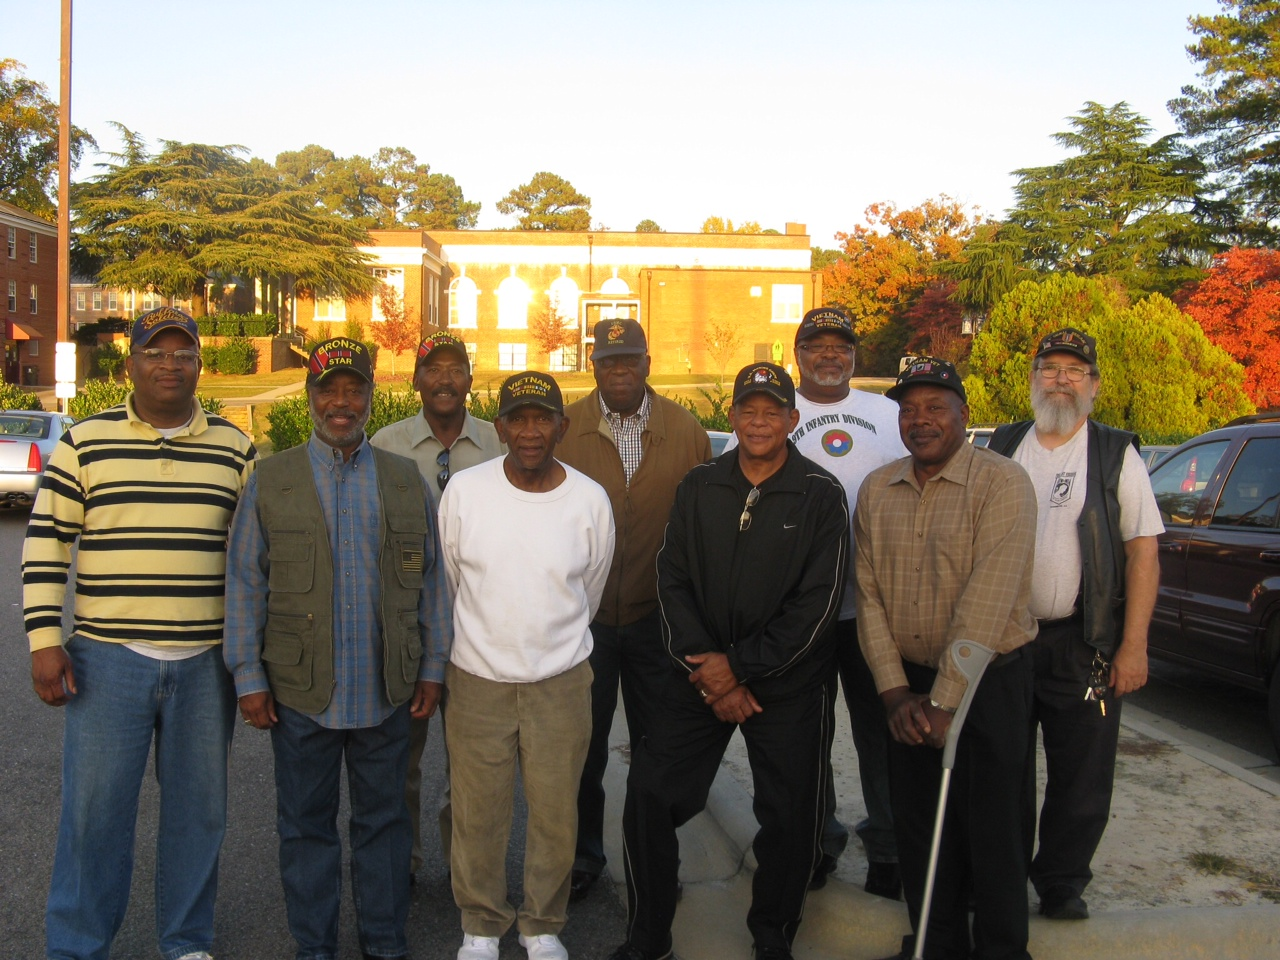 Group of veterans on the Duke campus